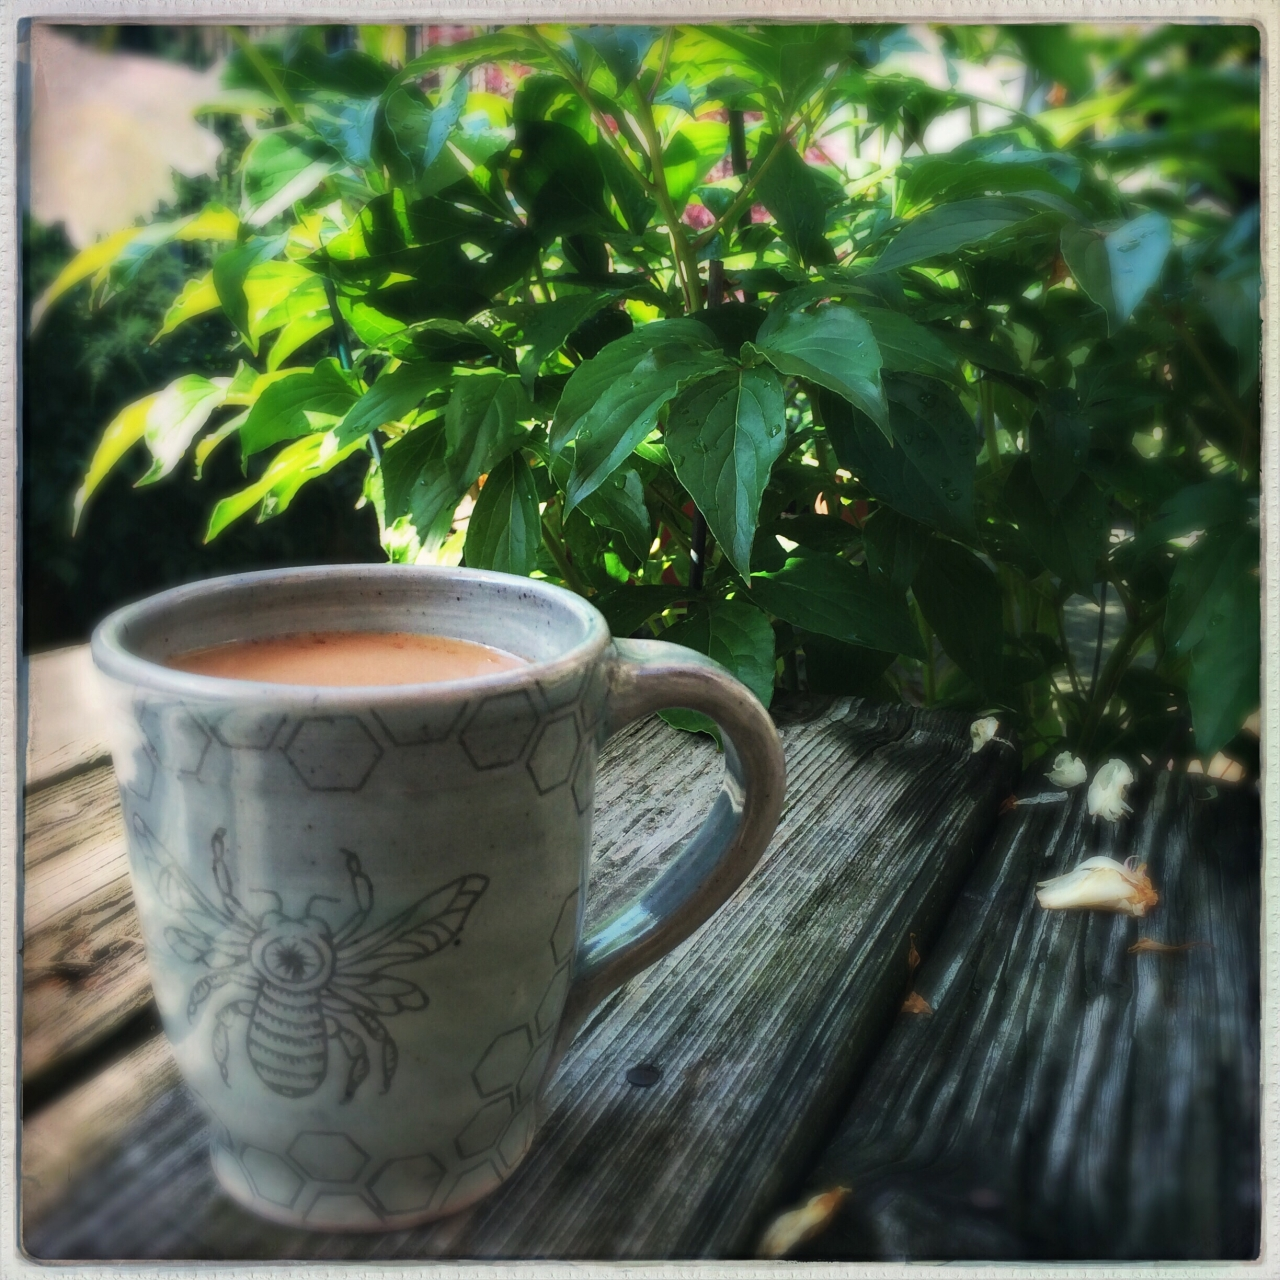 Morning coffee<br /> Hipstamatic Loftus + Robusta<br /> #21DaysWORLD #newjerseyusa